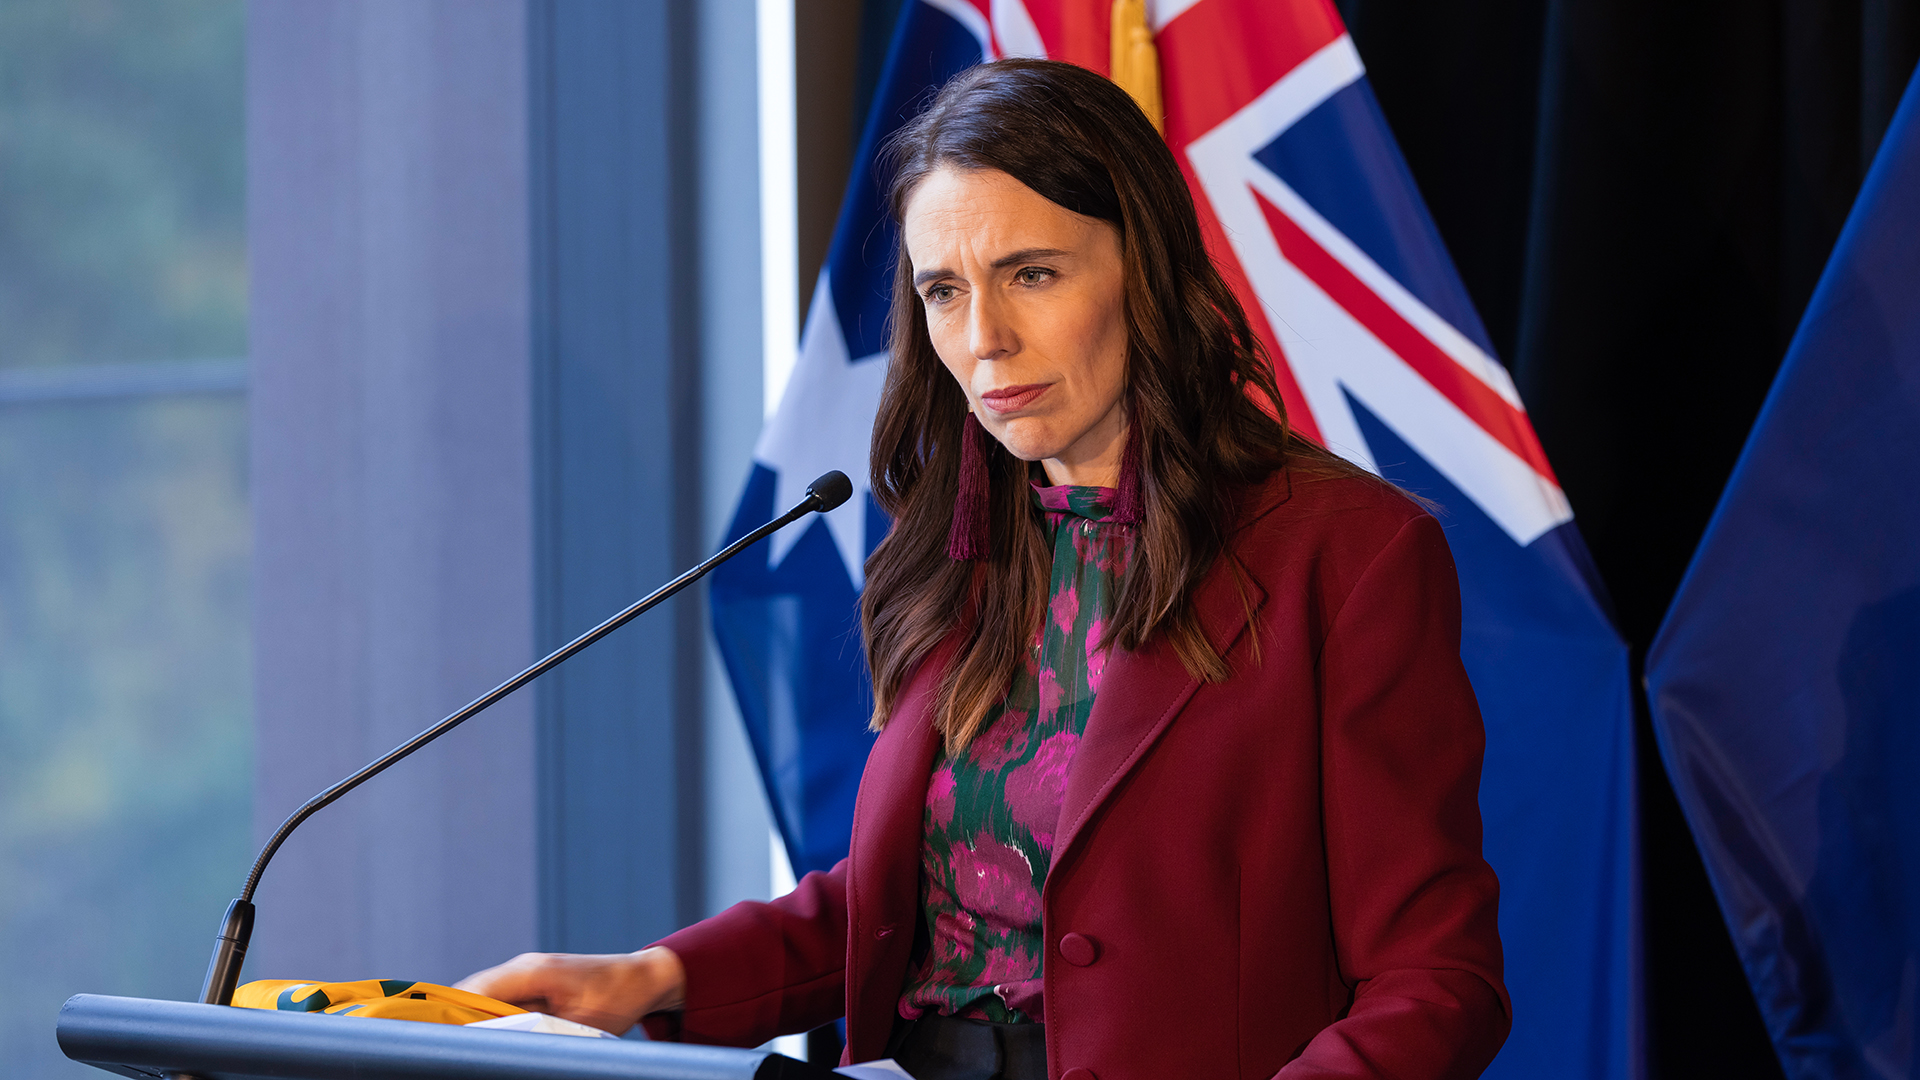 New Zealand PM To Apologize For Racist 1970s Raids On Pacific People